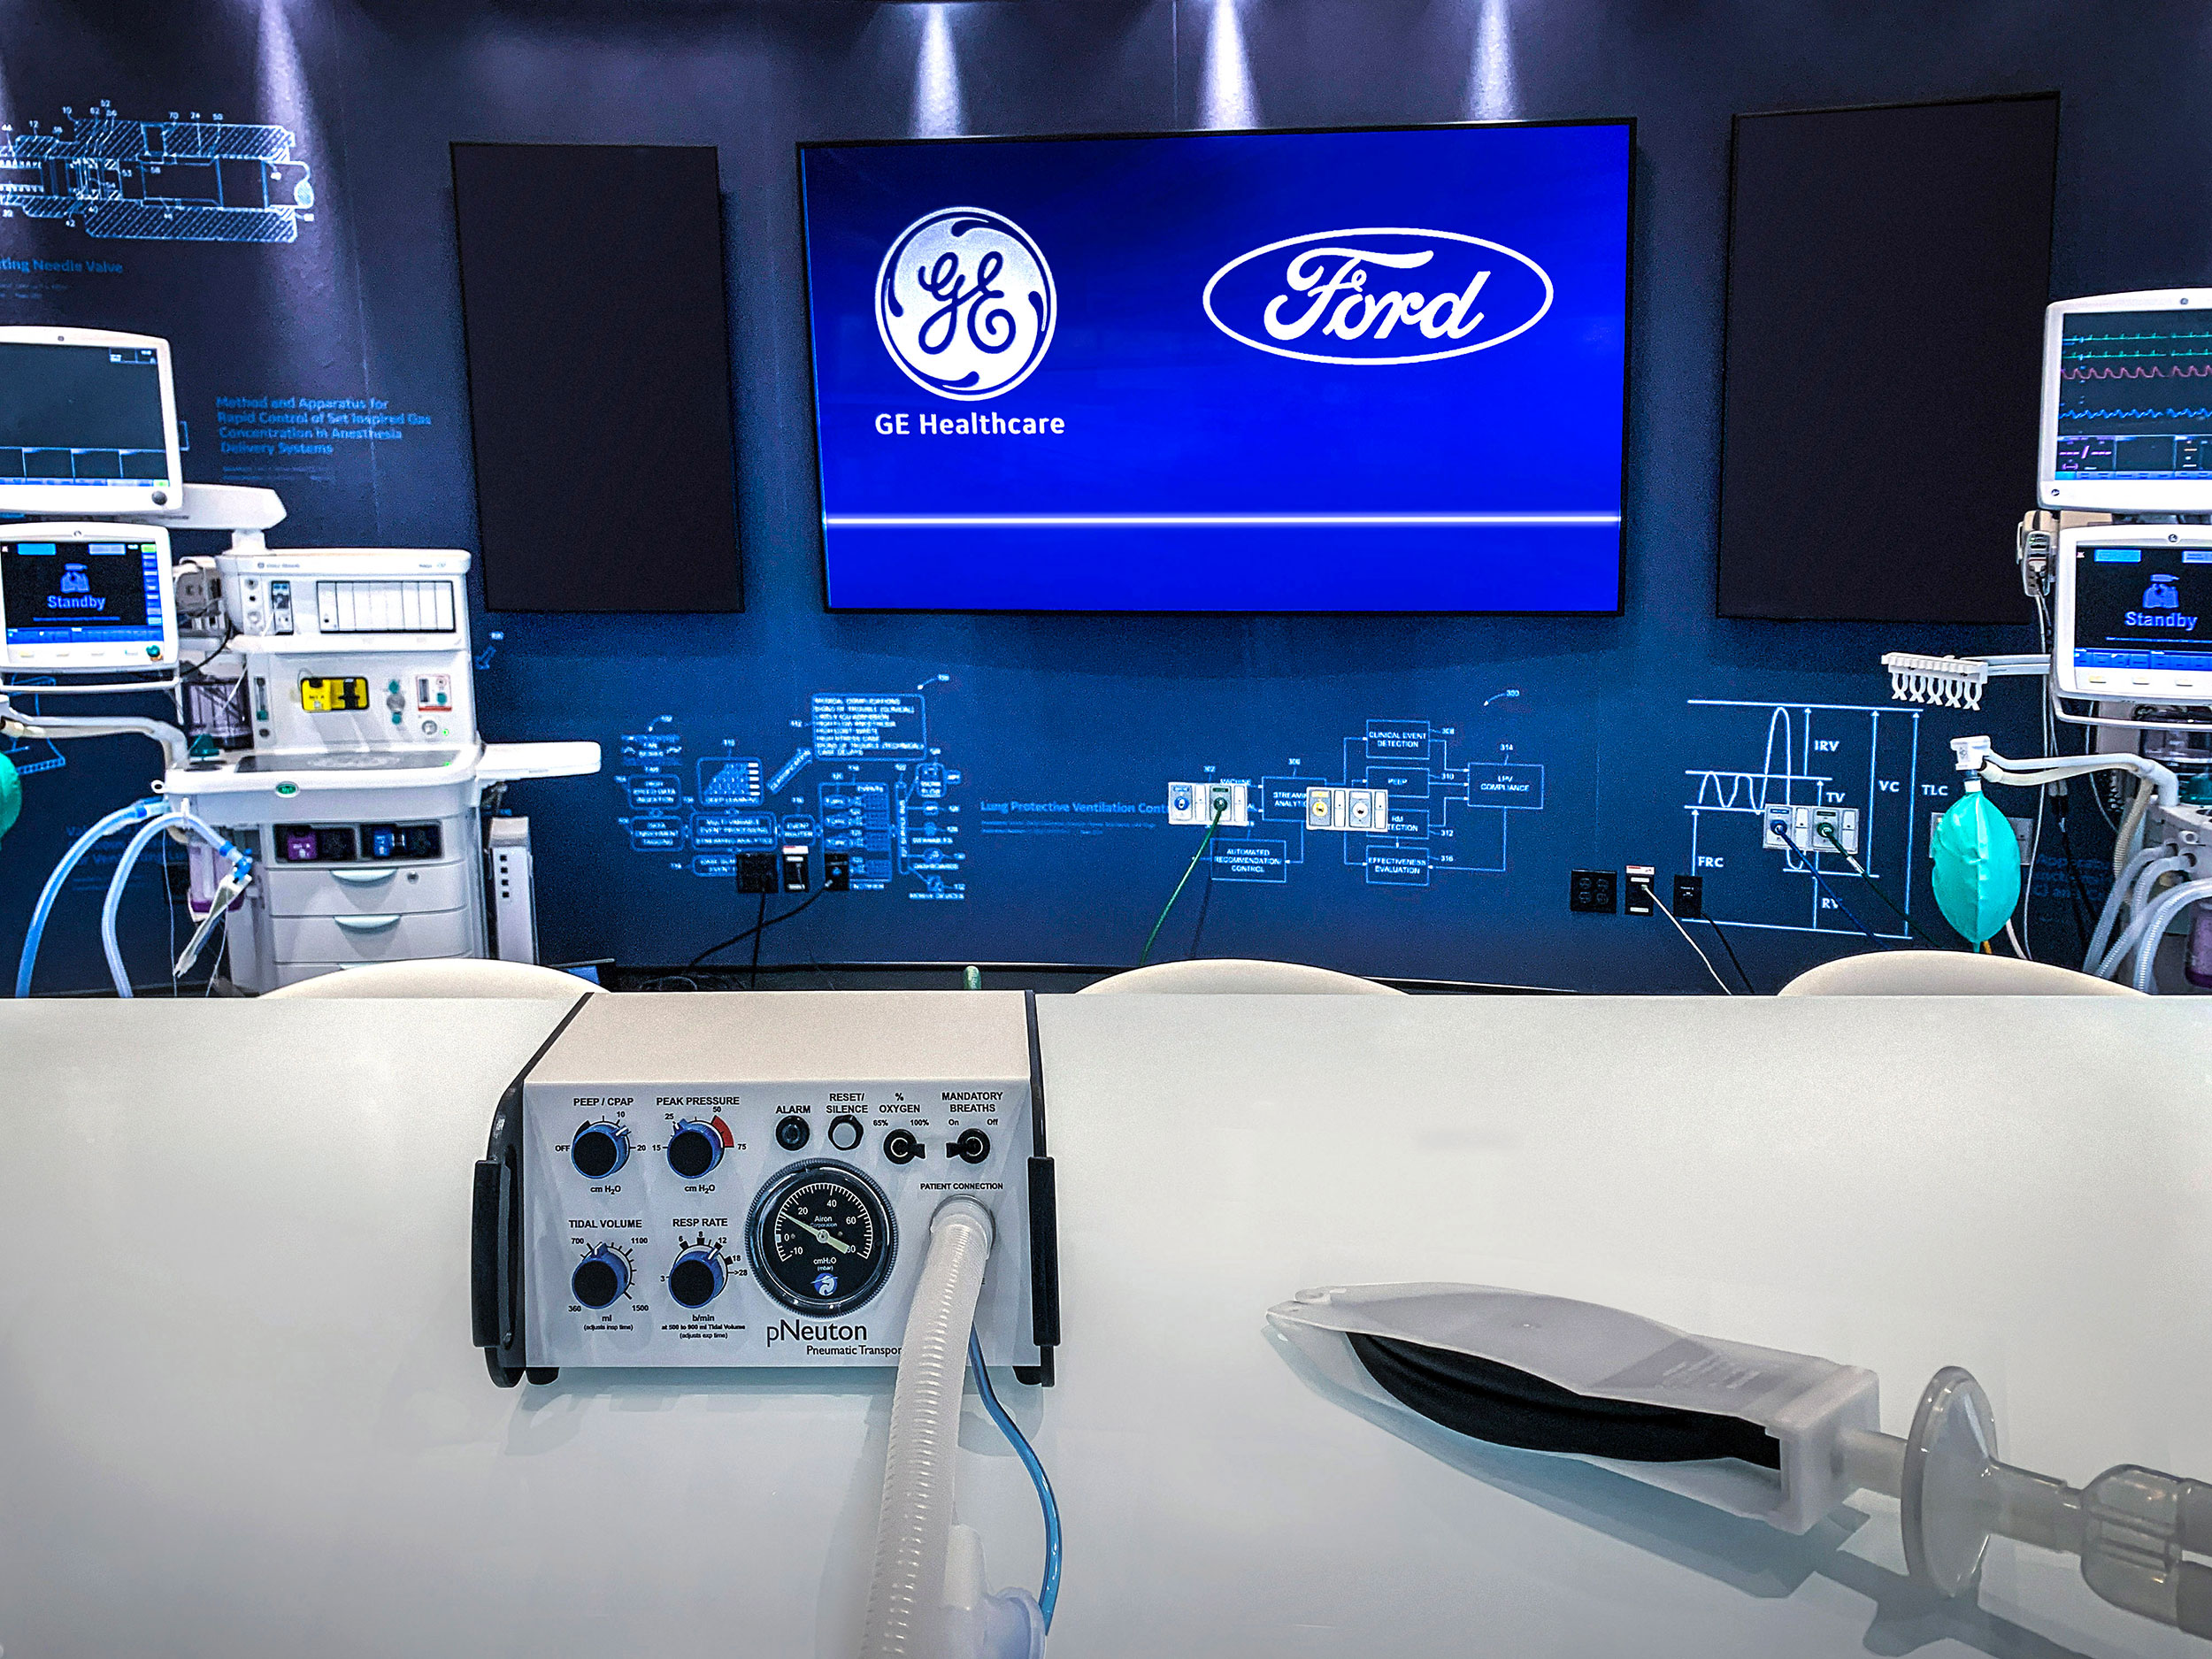 Ford to build 50,000 ventilators in 100 days